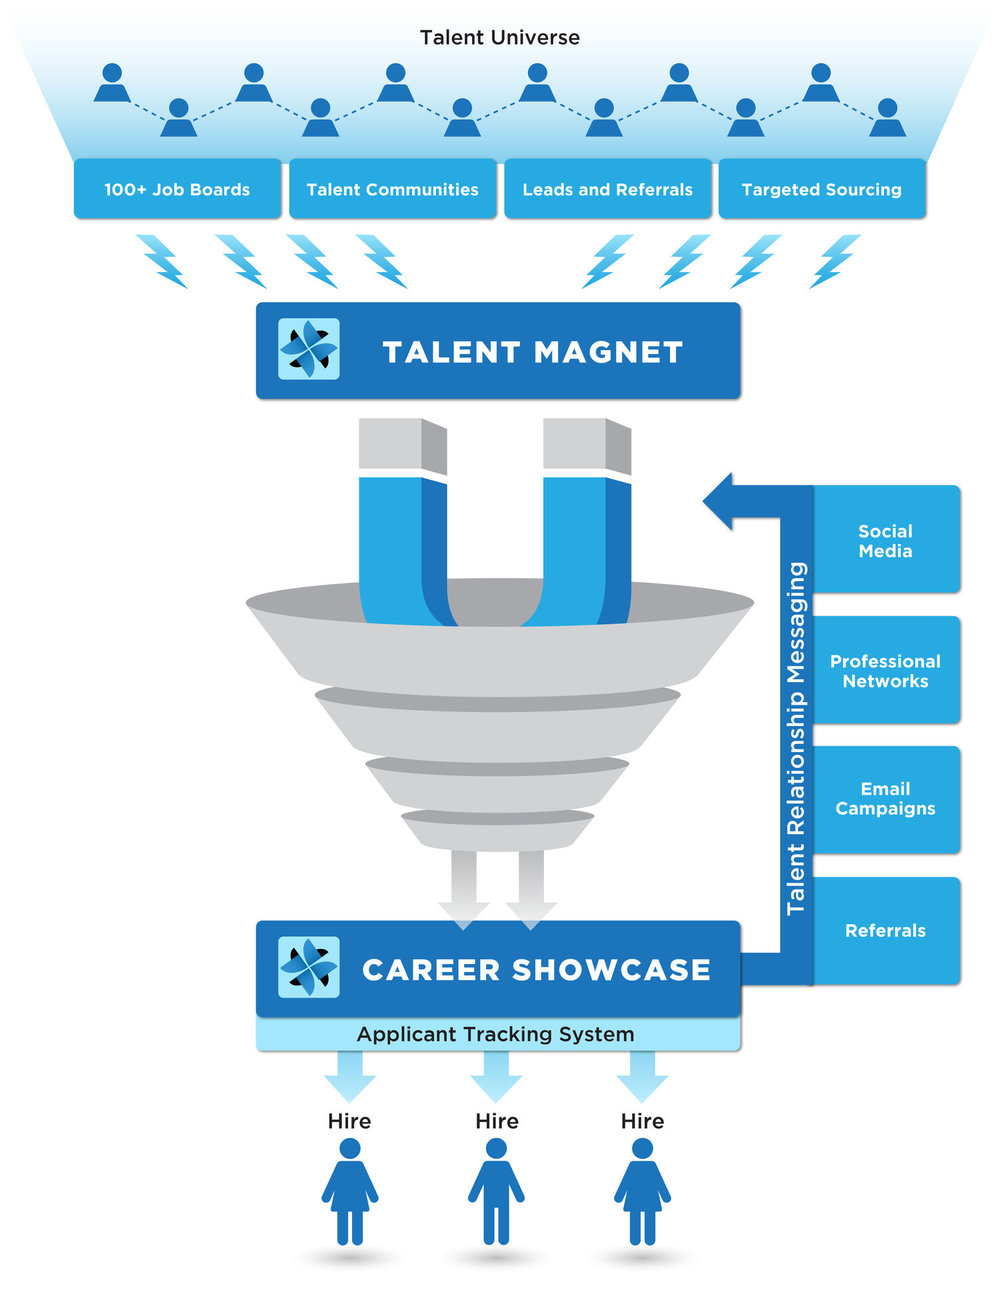 TalentCMO's Pre-Demand Recruiting